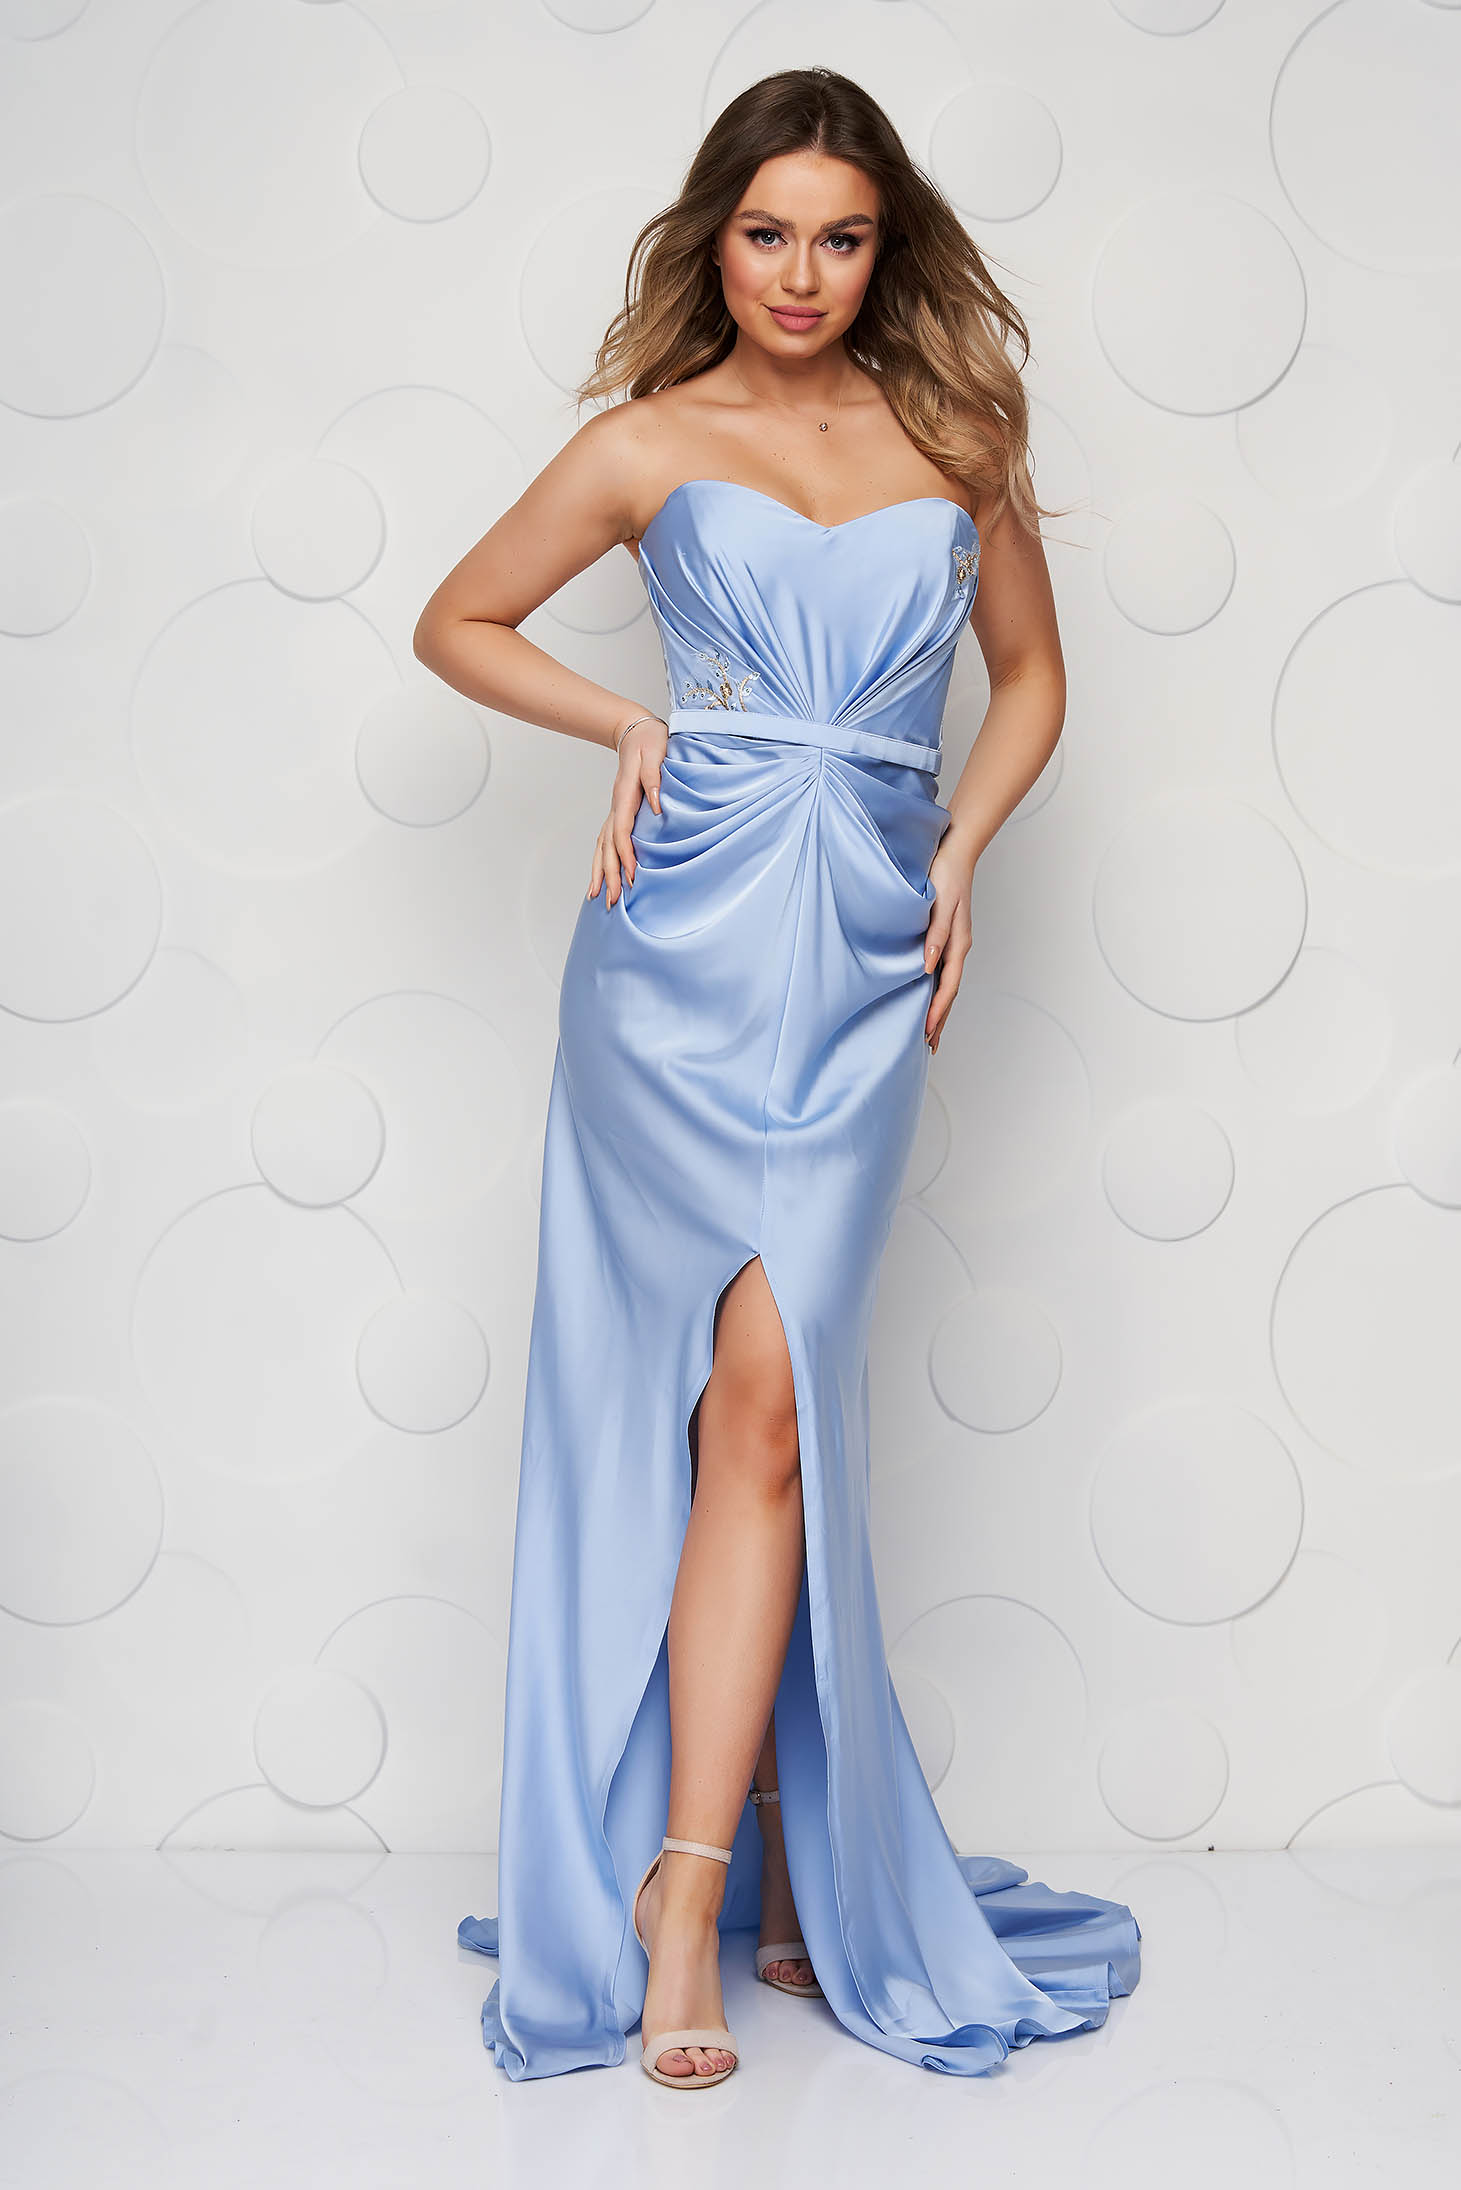 Lightblue dress long from satin luxurious slit with push-up bra naked shoulders